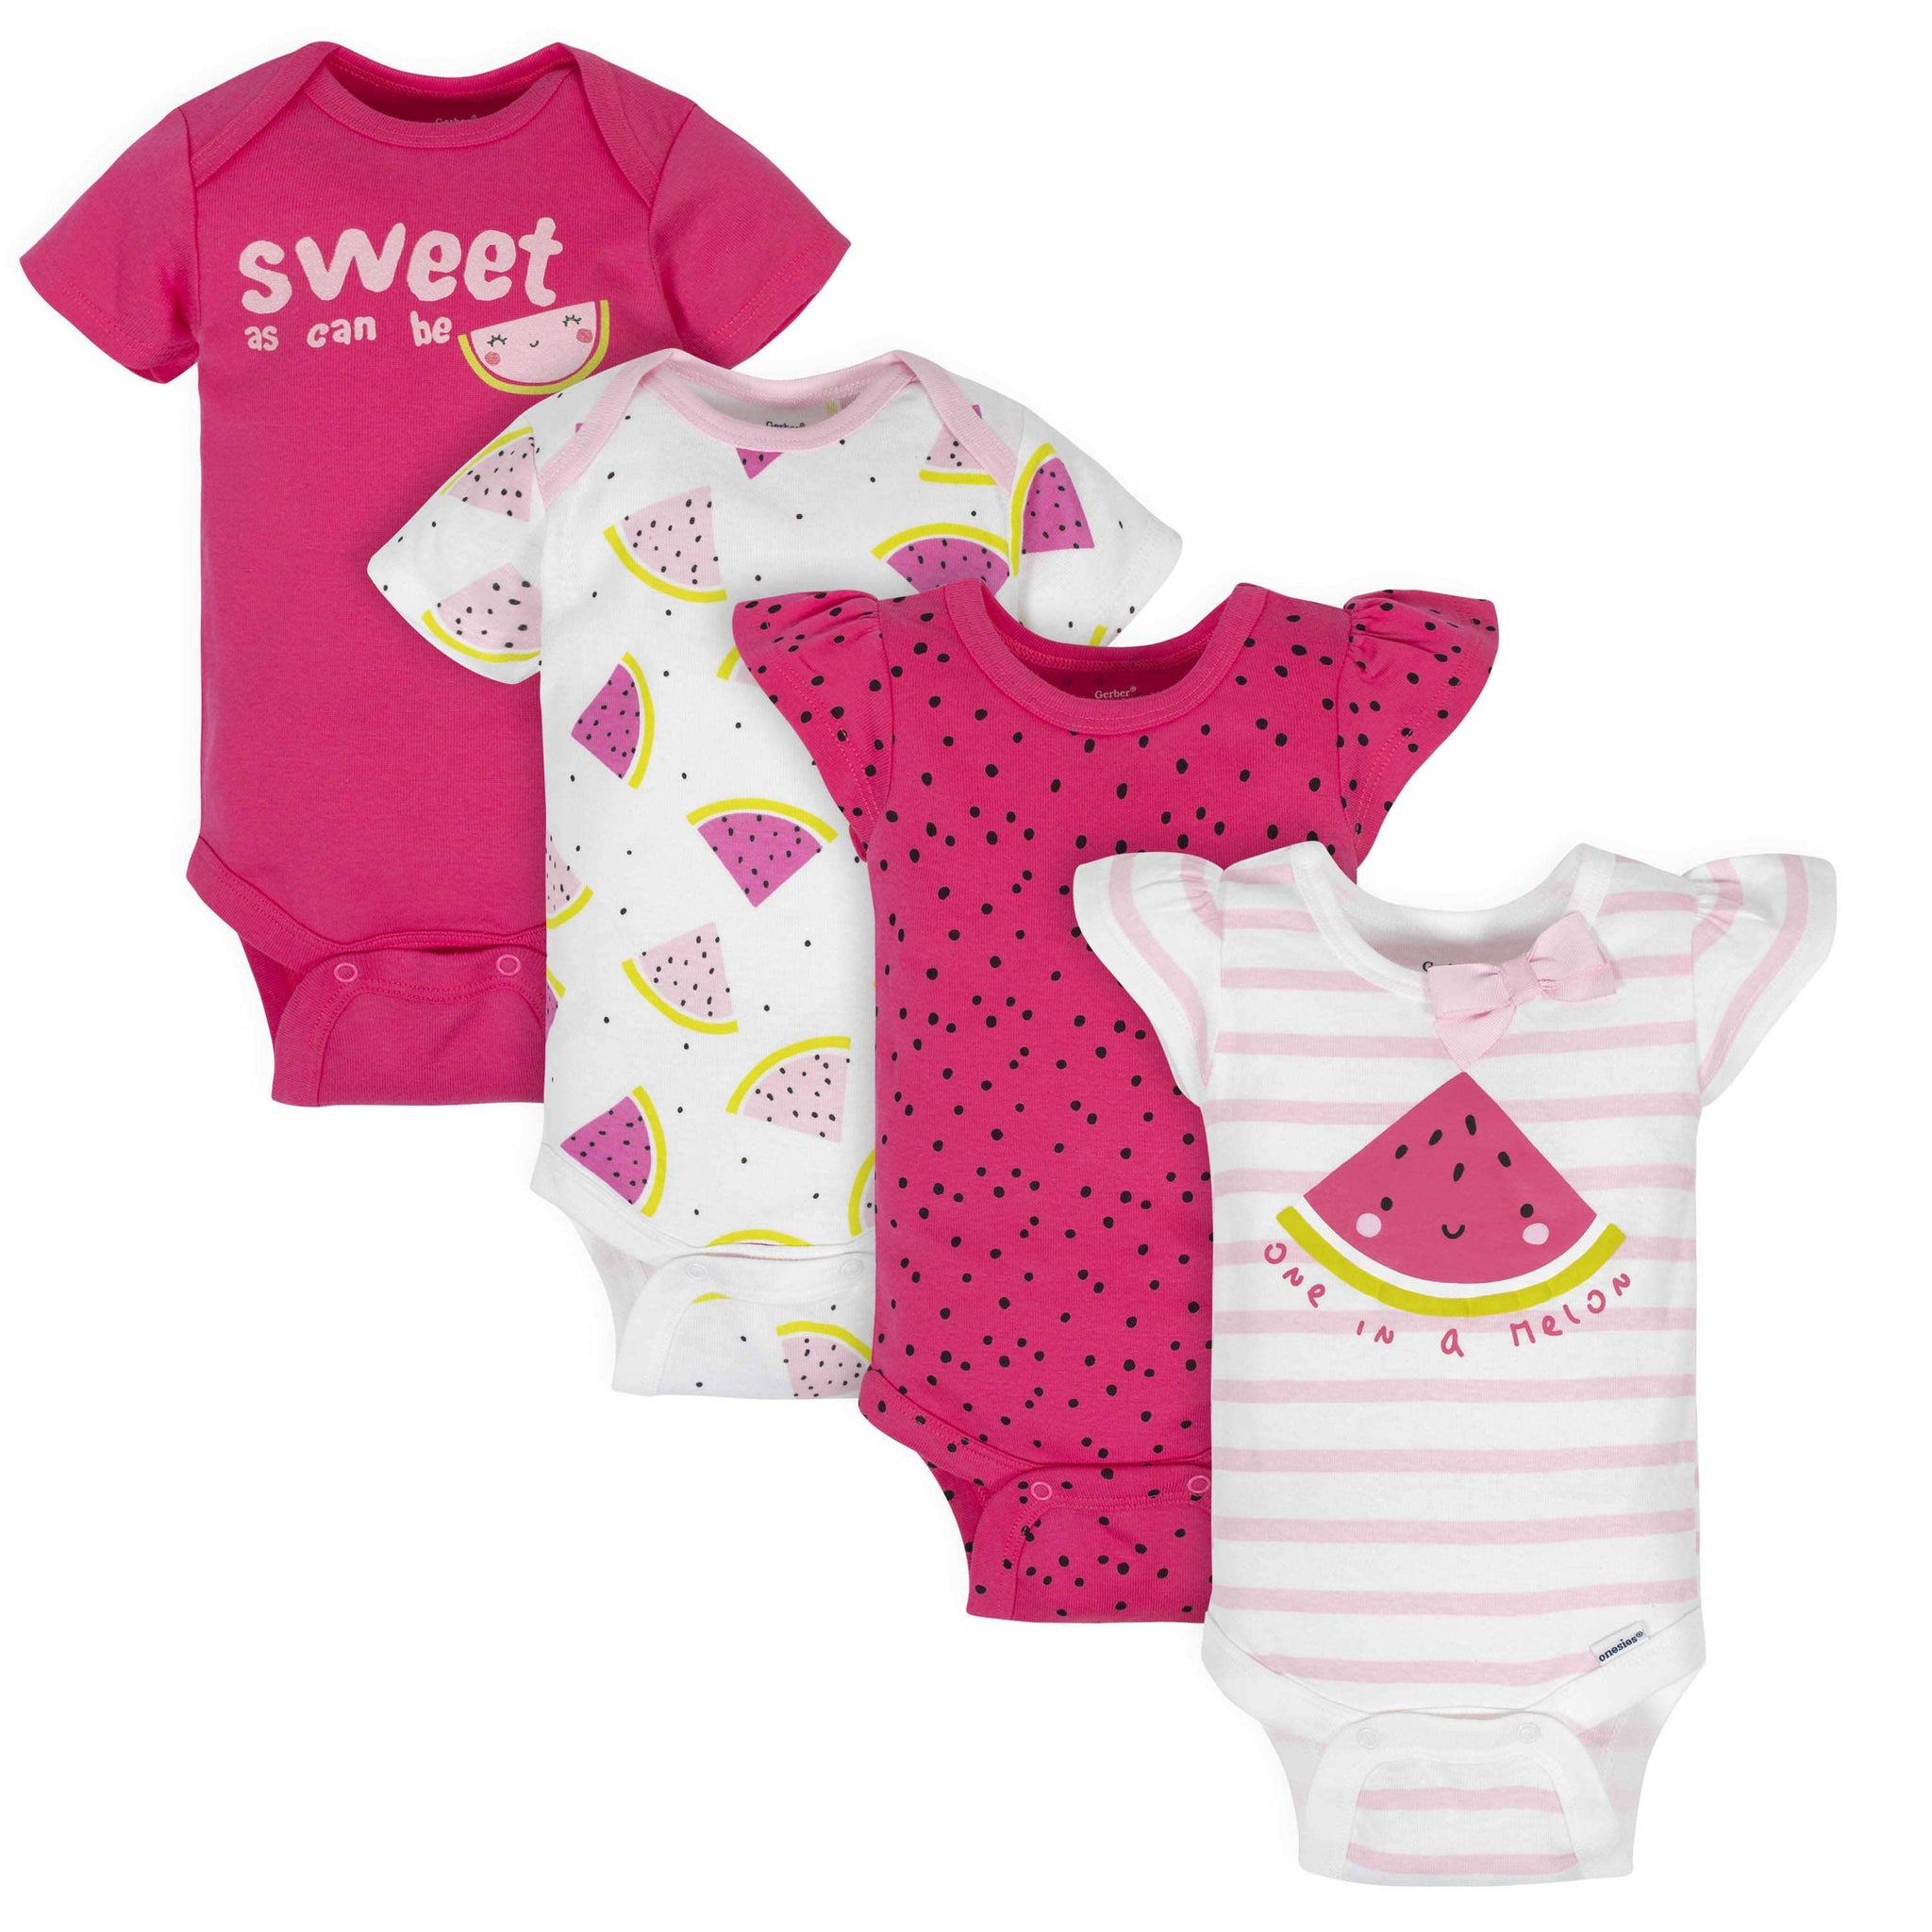 4-Pack Baby Girls Watermelon Short Sleeve Onesies Bodysuits